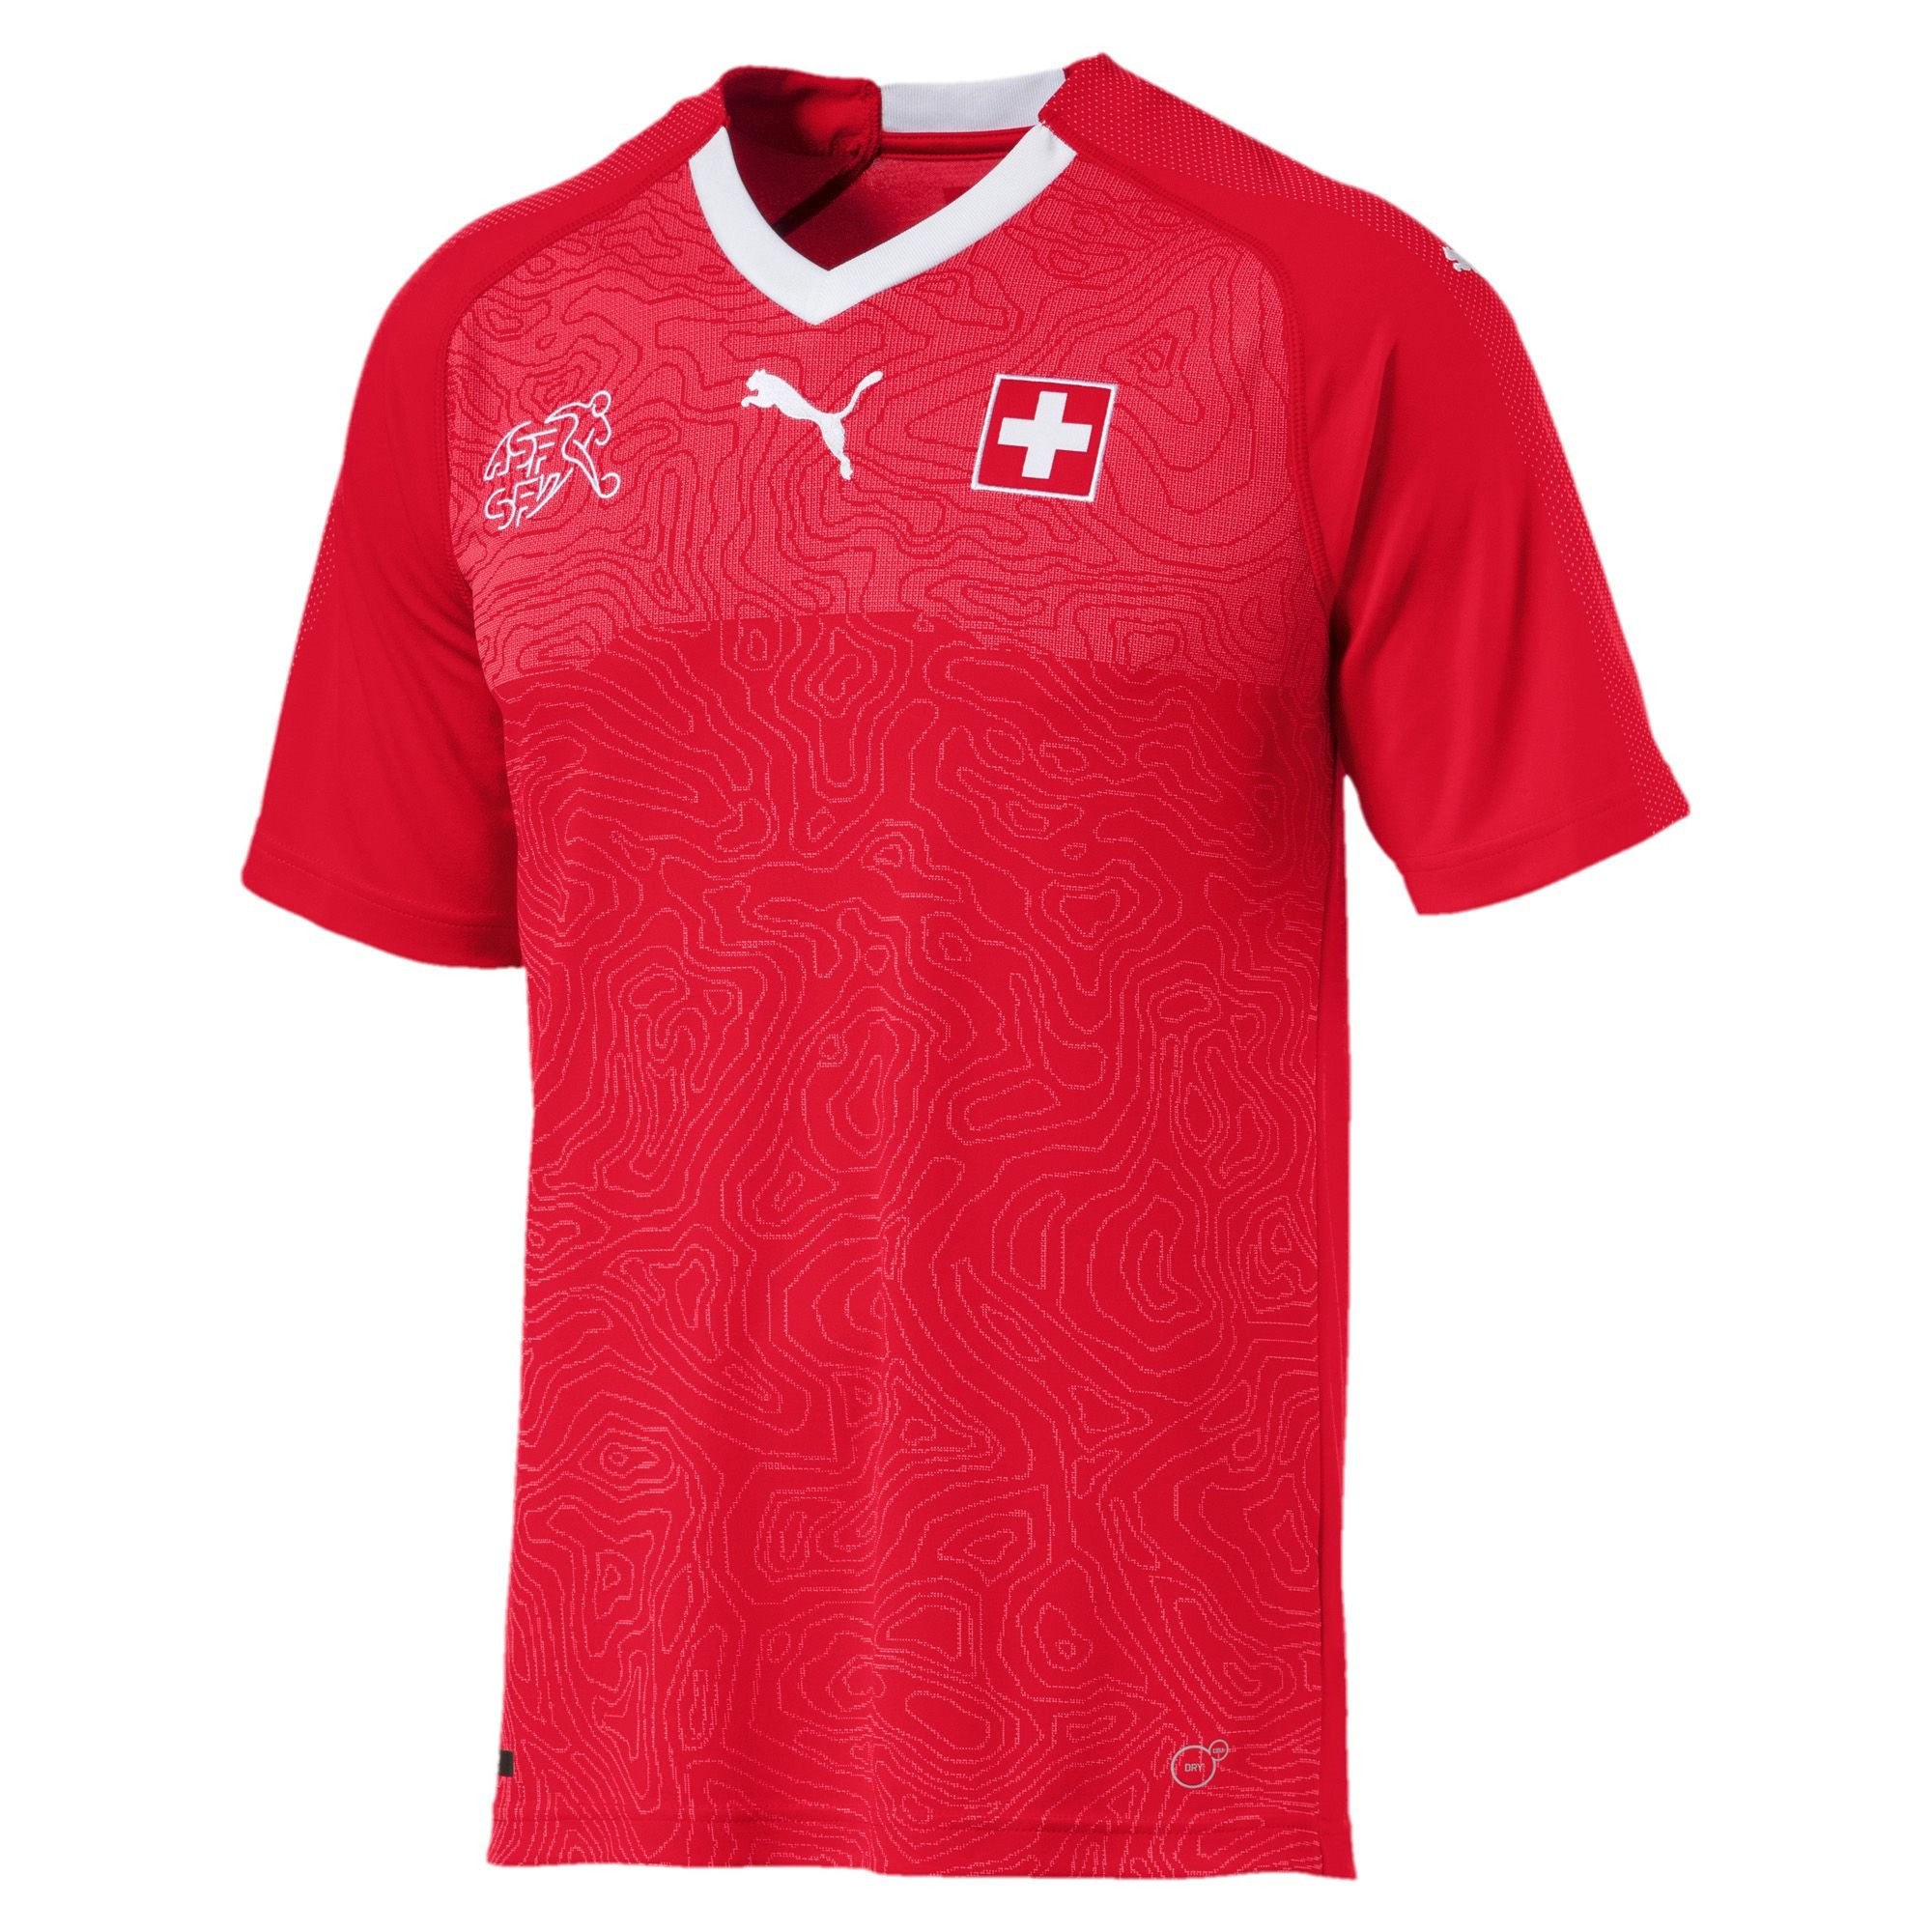 1dc385f94 The Best   Worst Football Kits at the 2018 World Cup - Casino.org Blog